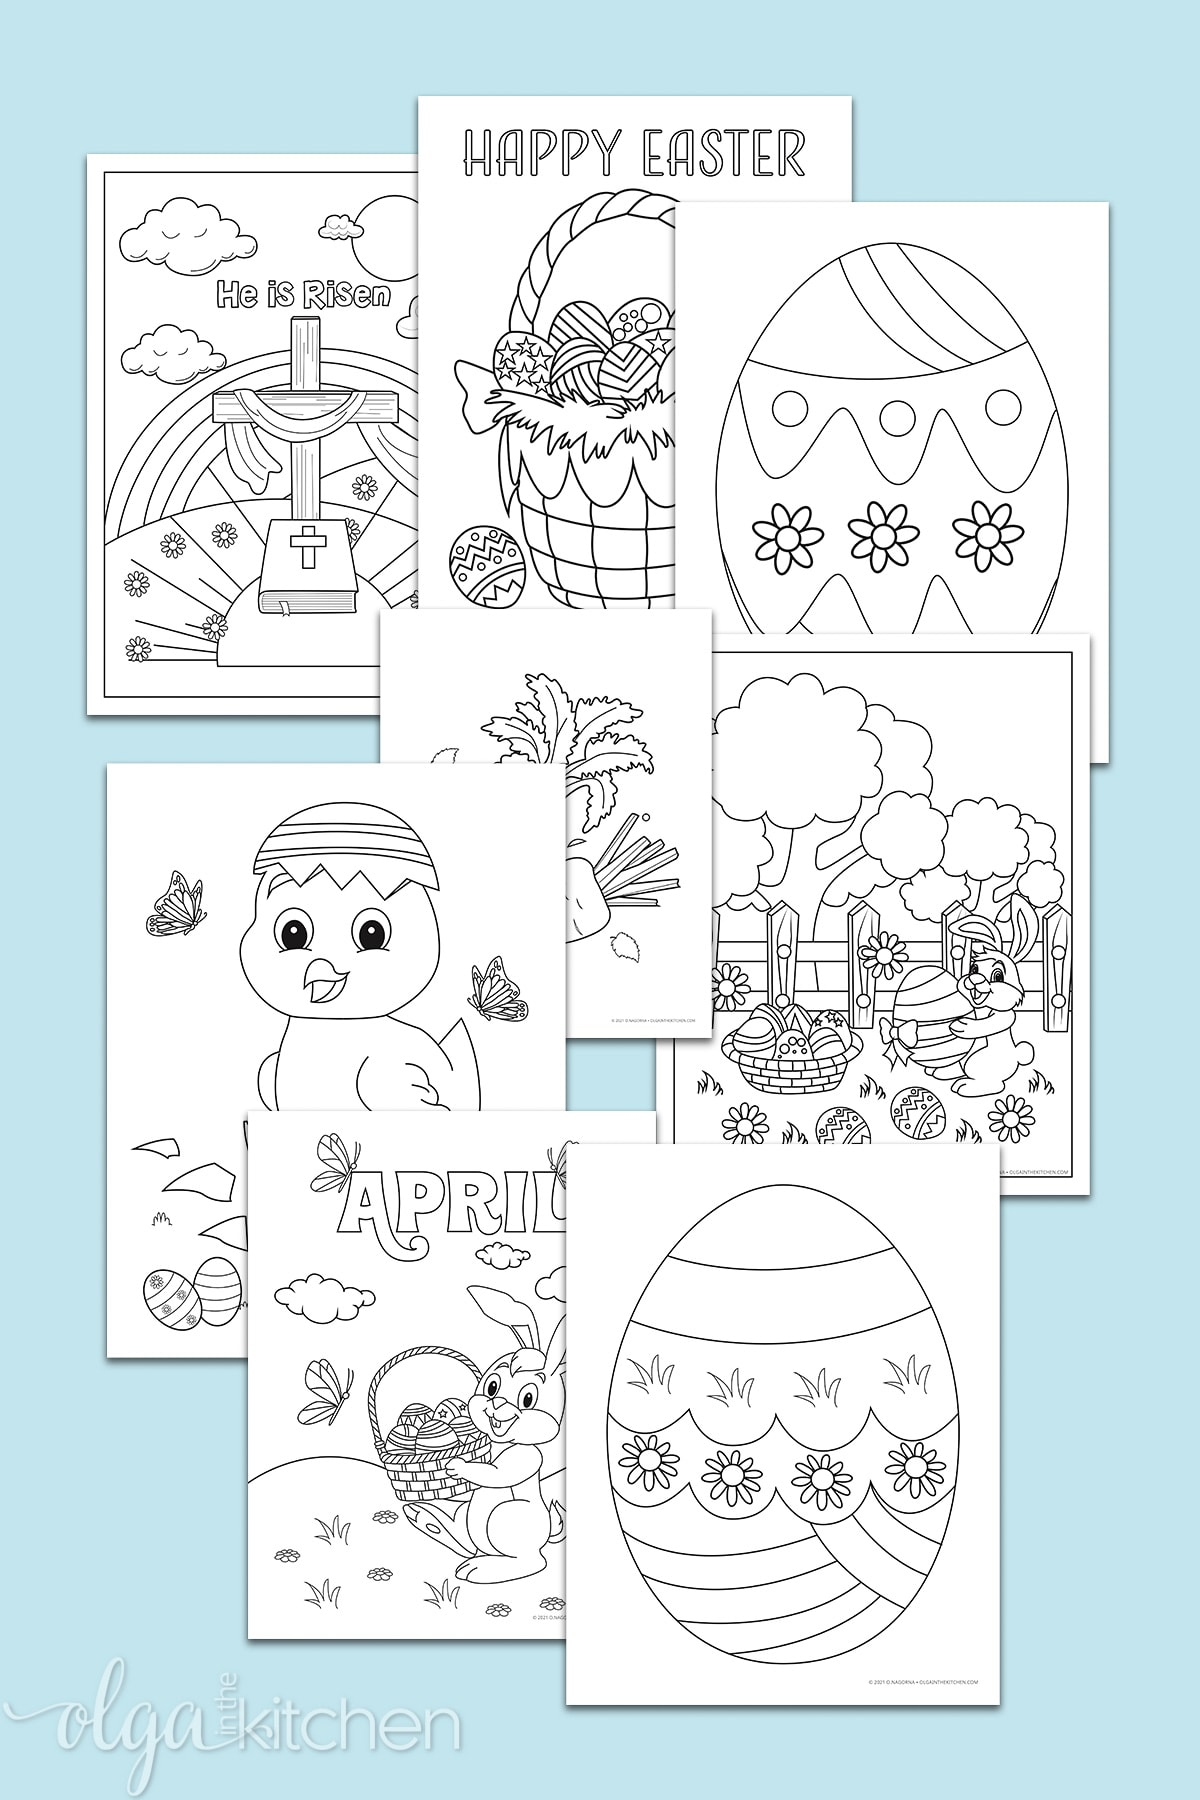 Easter coloring pages including Happy Easter, Easter eggs, He is Risen, Easter bunny and Easter basket.